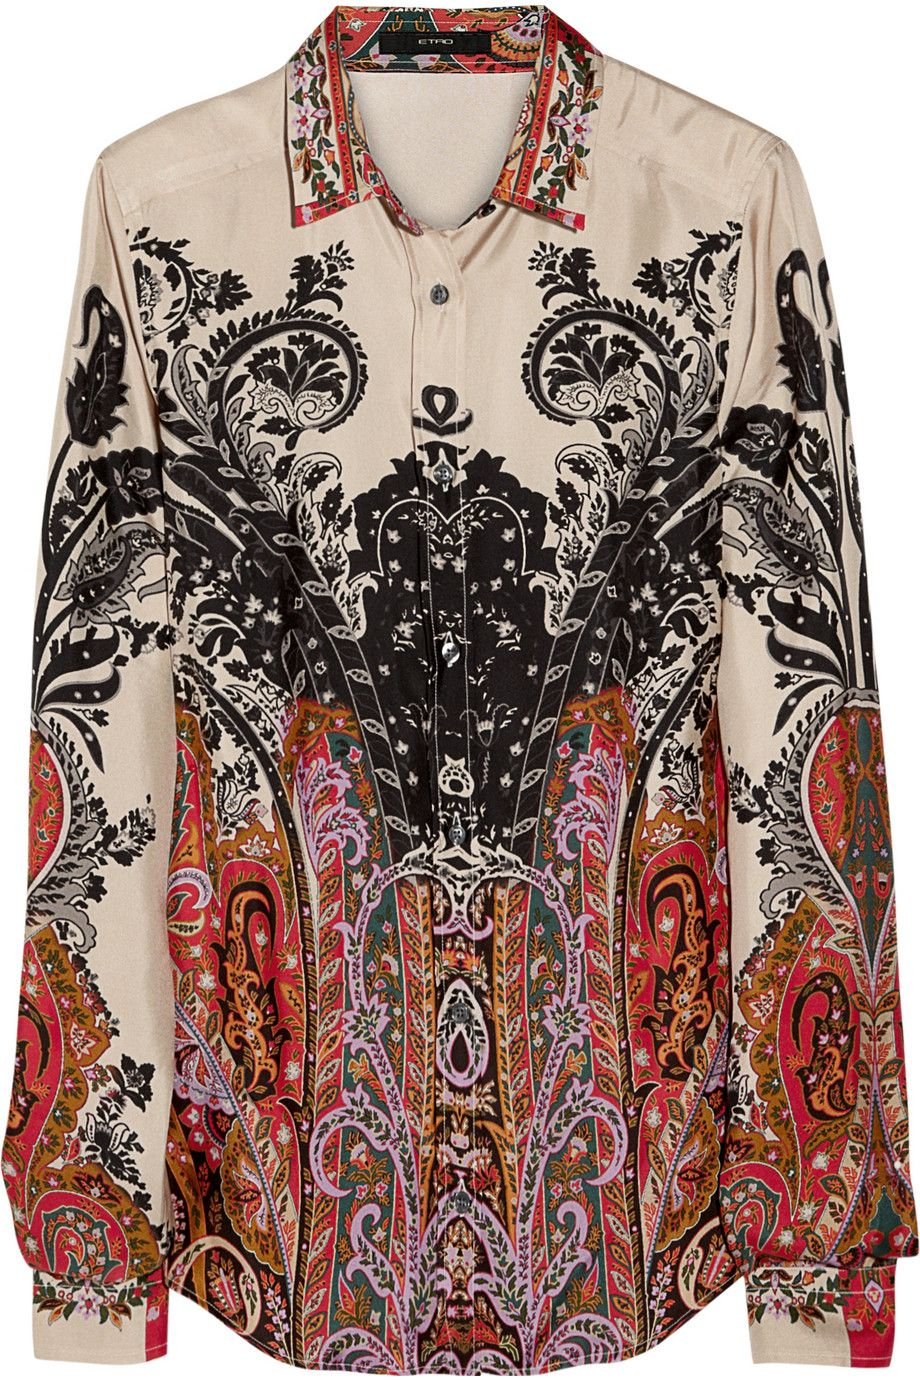 64661370cd8d41 Etro Silk Shirt $560 | I would totally wear this in 2019 | Shirts ...